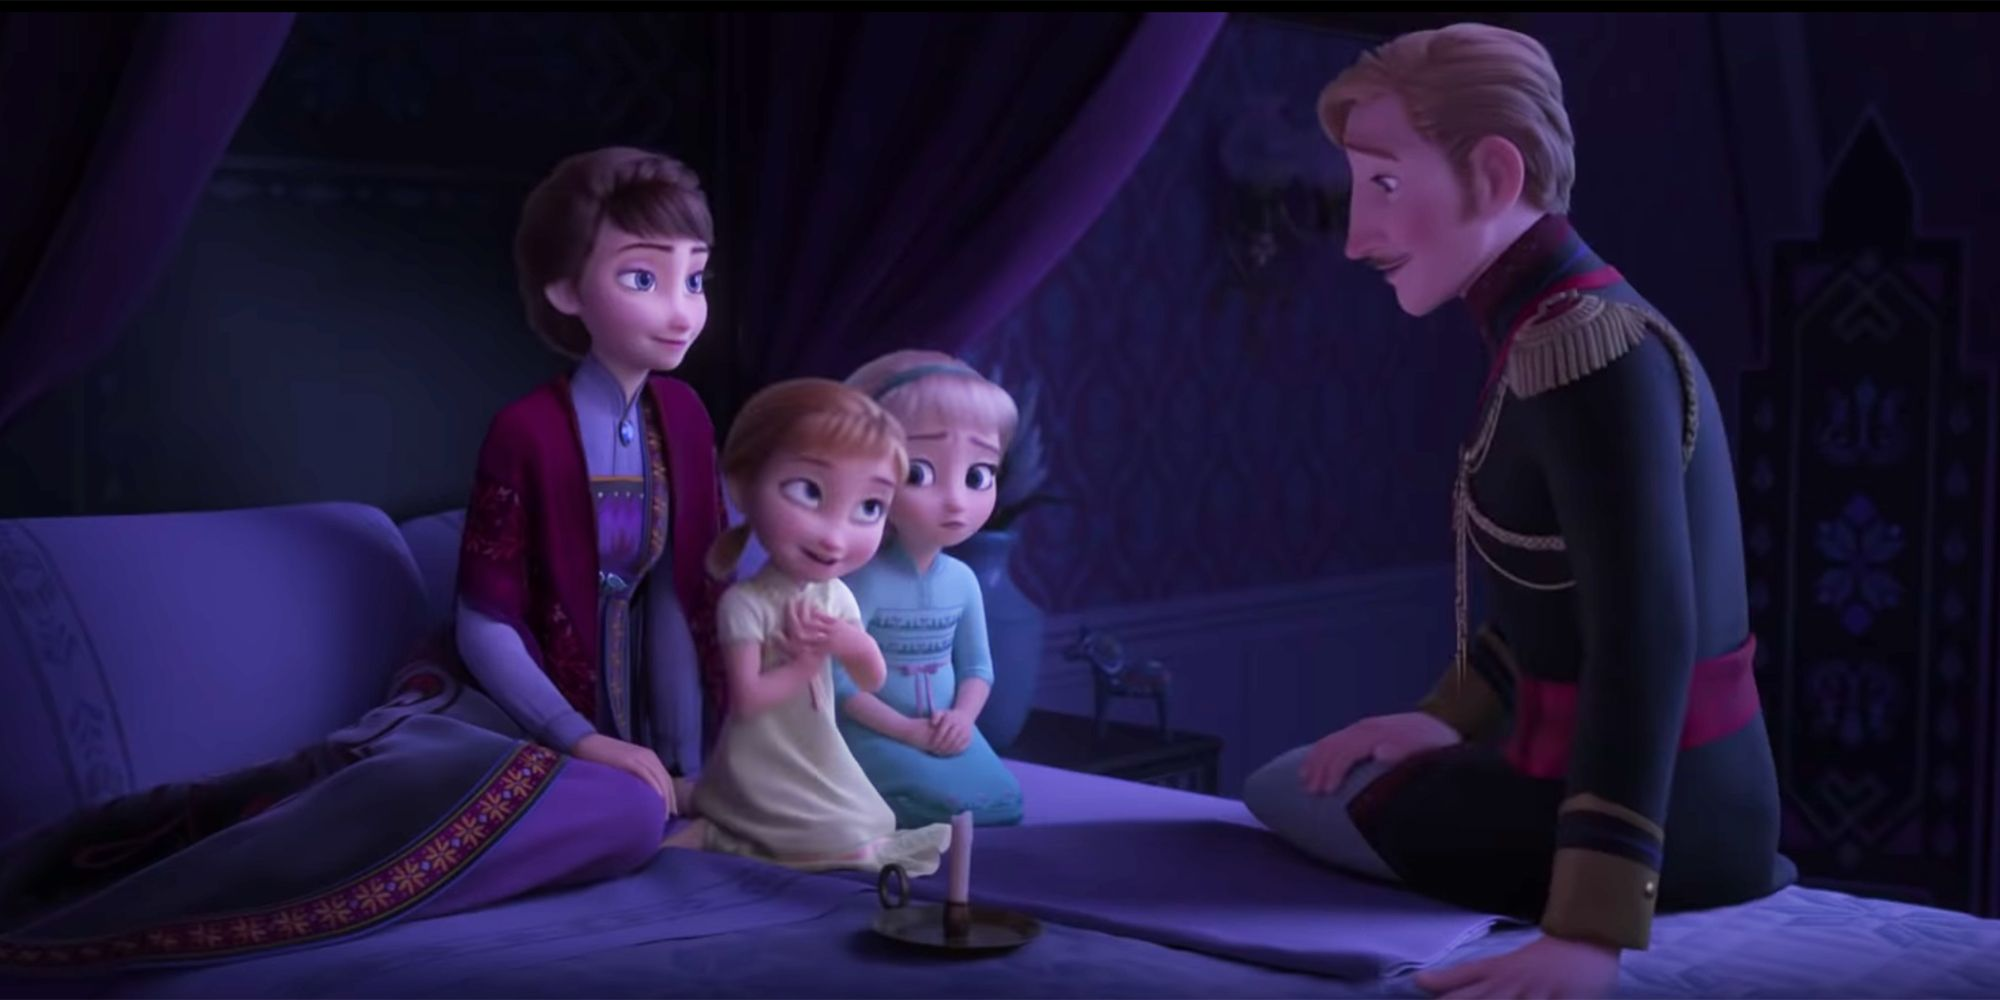 pics of olaf from frozen